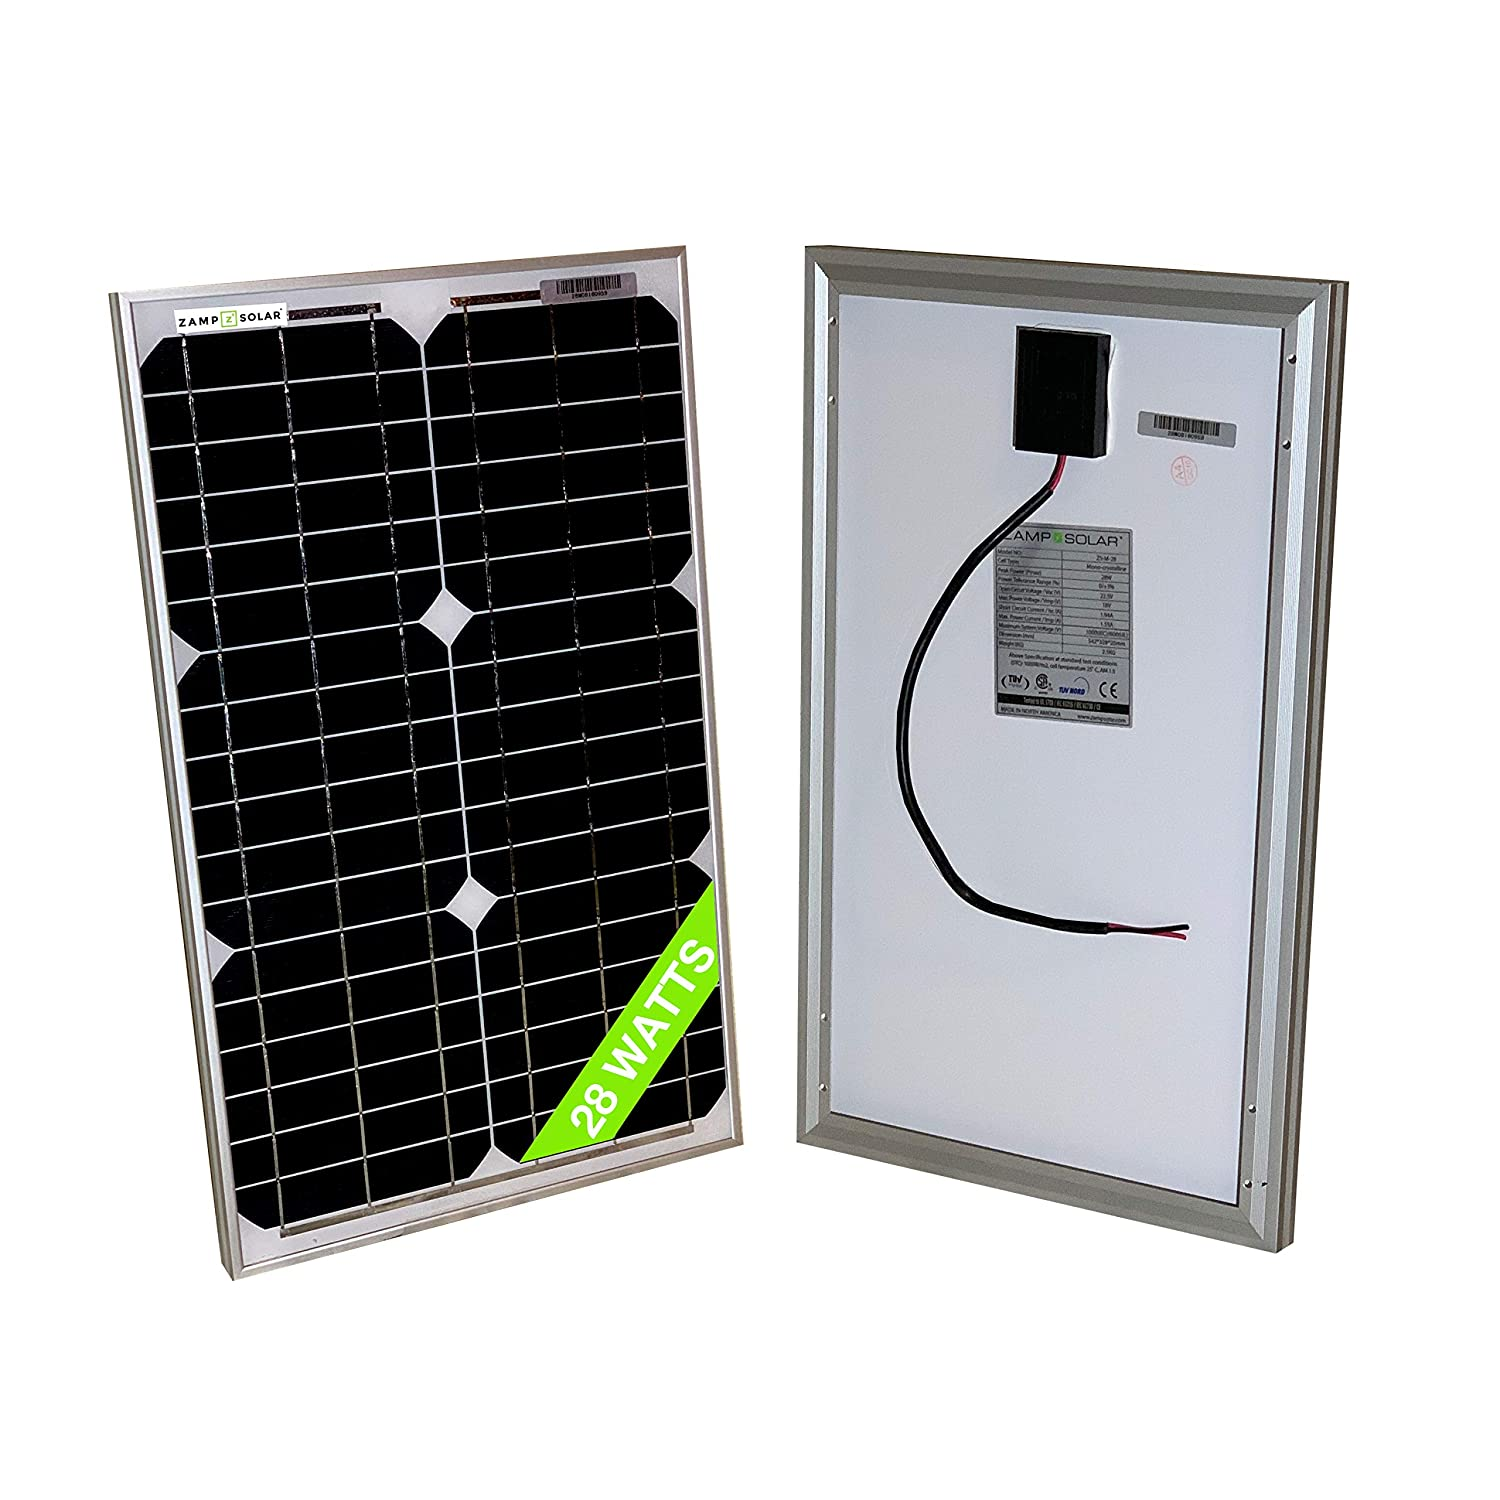 28 Watt Mono 18V Solar Panel 20W 25W 30W RV Van Solar Car Battery Charger Portable Solar Panel Trickle Charger 12 Volt Batteries Motorcycle RV Boat Marine UTV, ATV, Solar Generator Zamp Solar